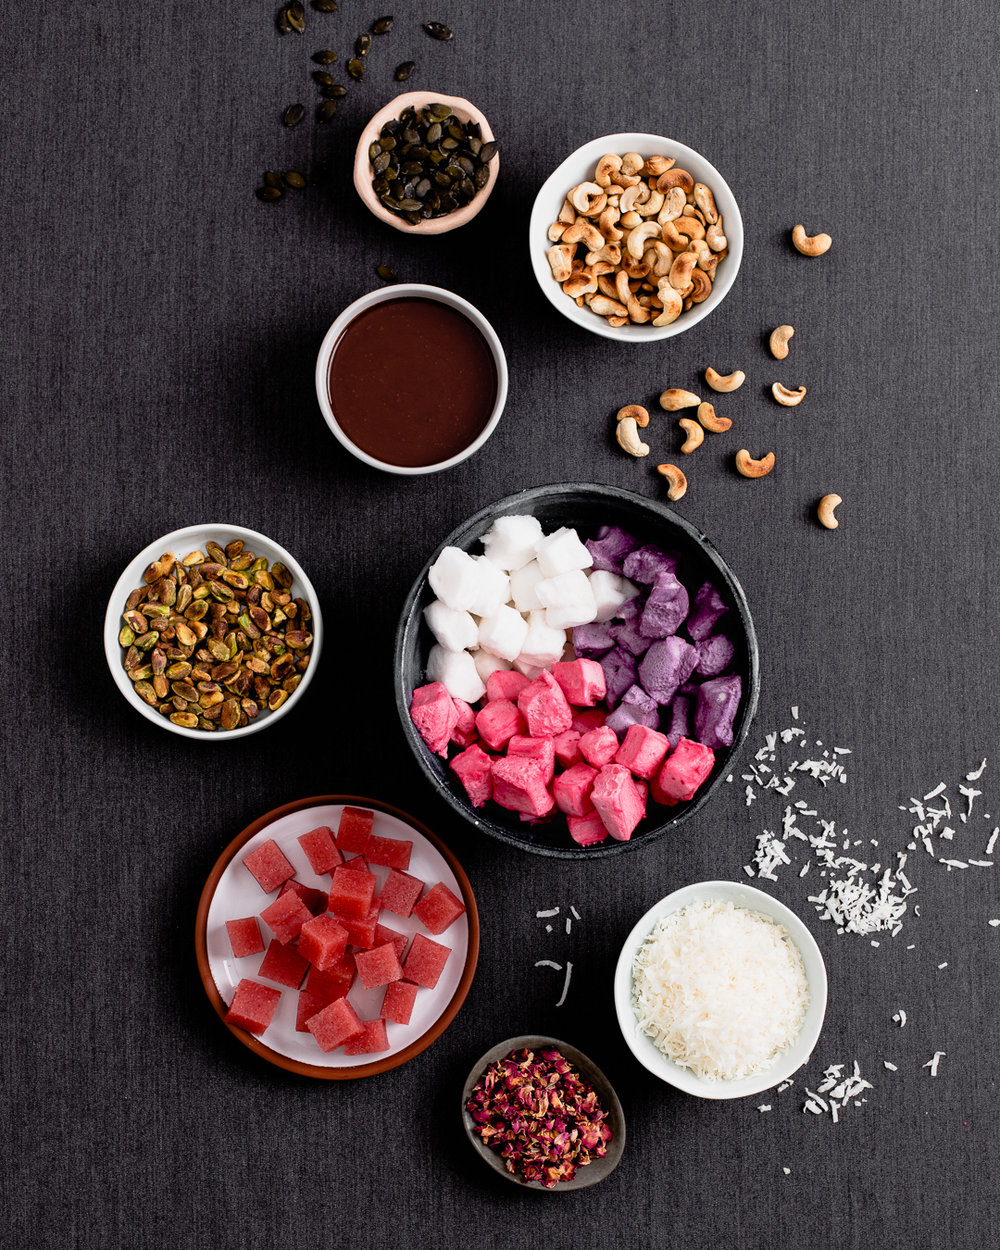 Marshmallow_Fillings_by_Jordan_Pie_Nutritionist_Photographer-1.jpg